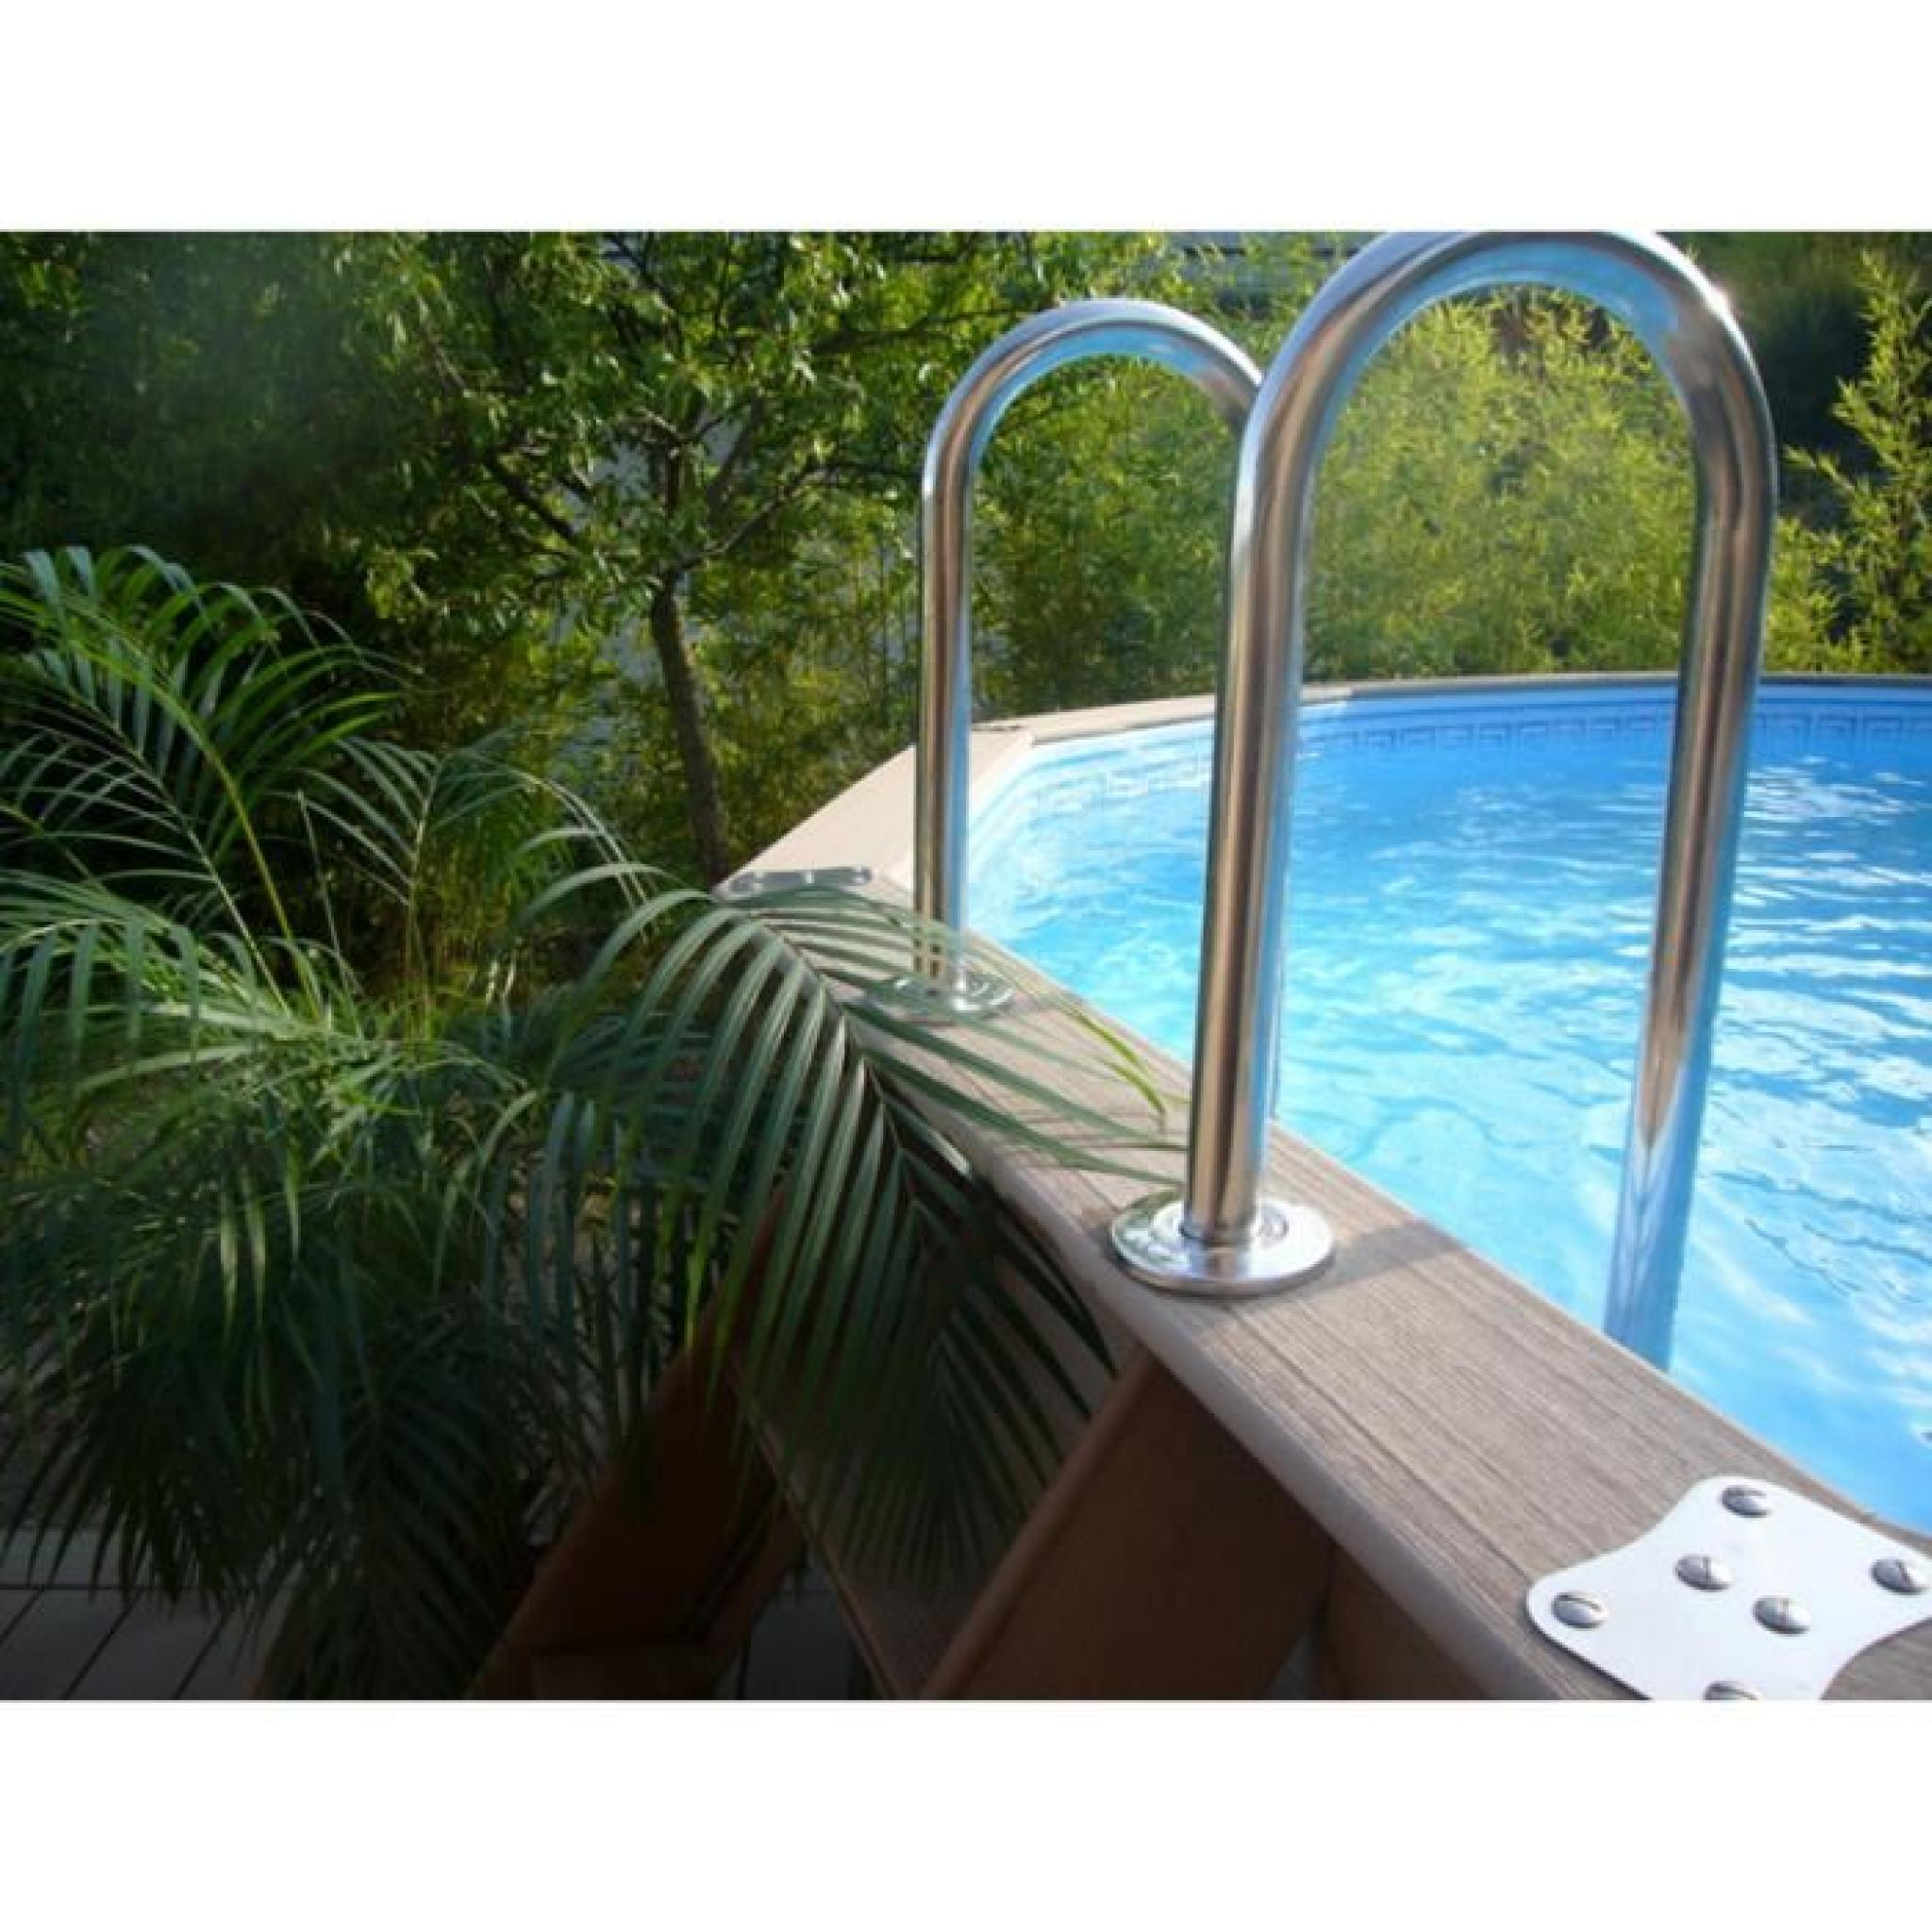 Piscine ronde new bounty en bois composite diam tre for Piscine 3m de diametre